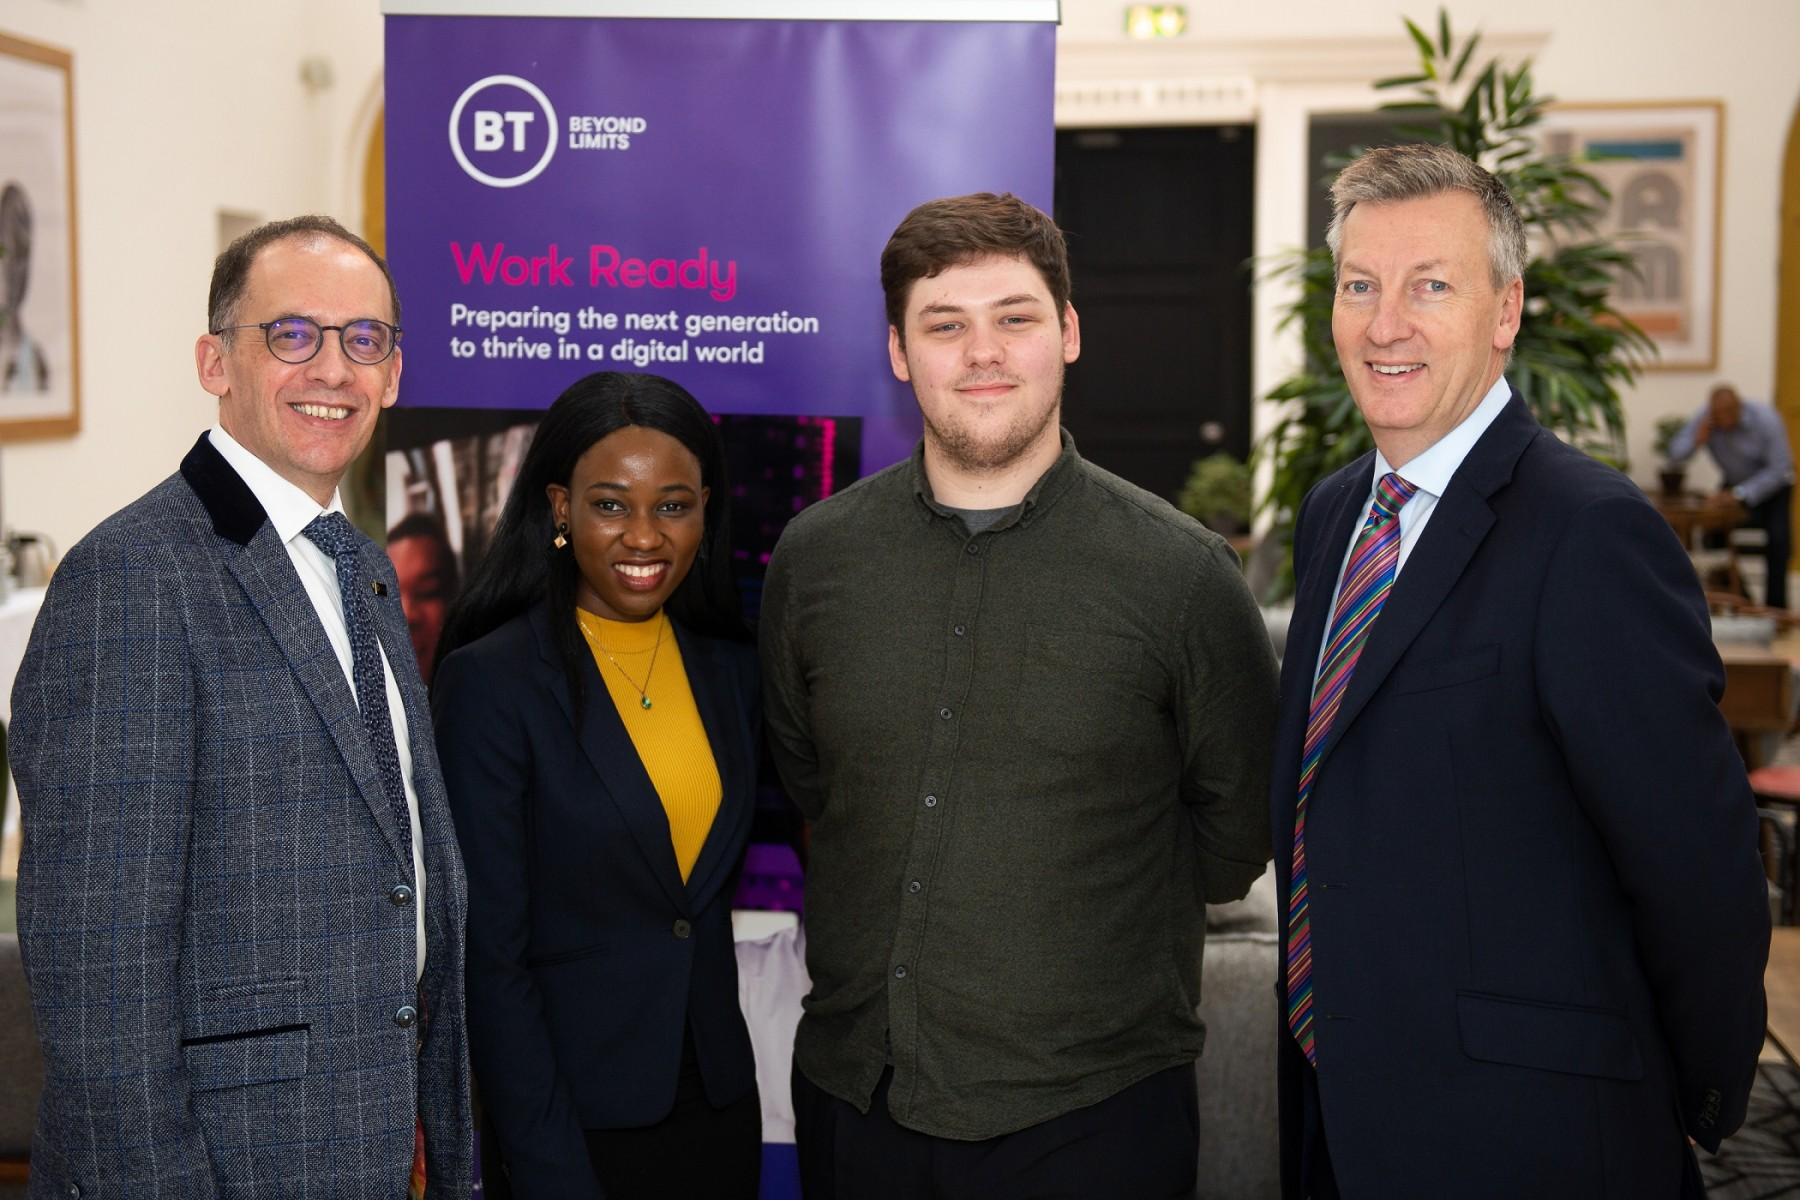 Jose Lopes  and Ricky Ricketts with graduates Gifty Tubor and Michael Pitt